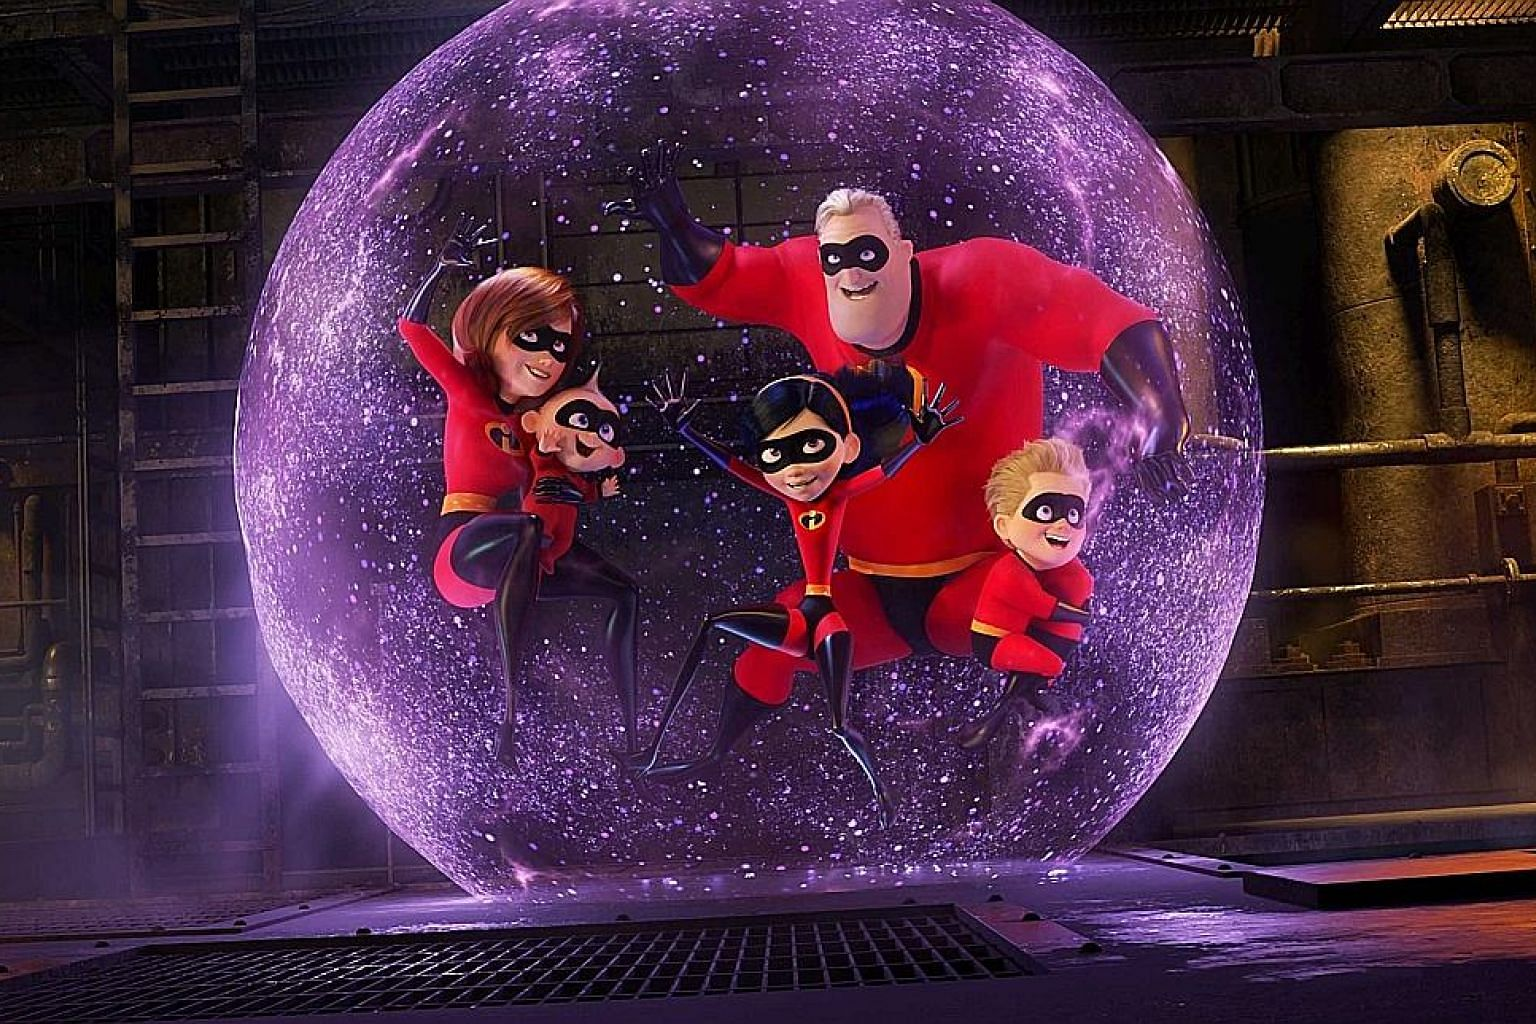 Disney/Pixar's Incredibles 2 will be released on June 14.